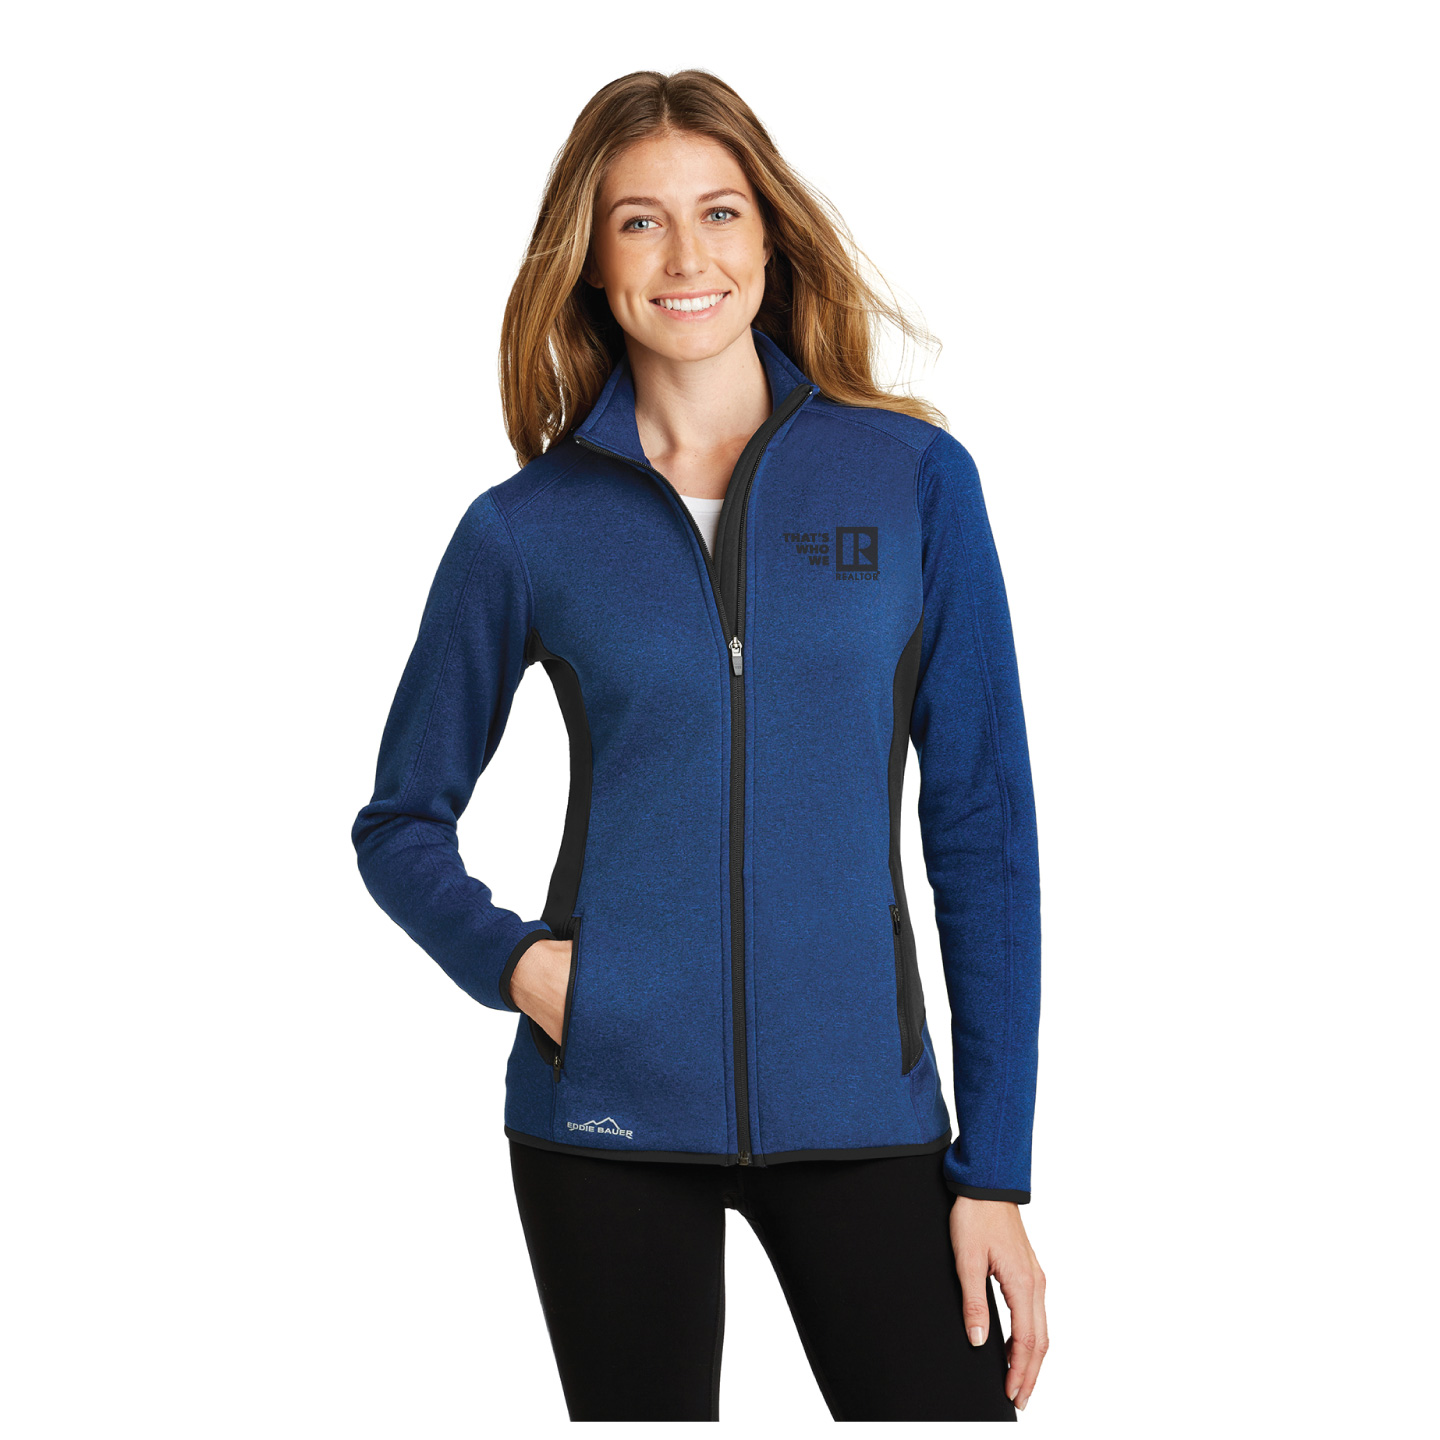 """Thats Who We R"" Ladies Eddie Bauer Fleece Jacket  twwr,ThatsWhoWeR,Thats,TWWR,ThatWho,ThatsWho,Twwr,Thats,Whos,We,Ares,Jacket, Thats Who, Fleece, Brand, Warm, TWWR, Gift, President, Board, Store, Association,"